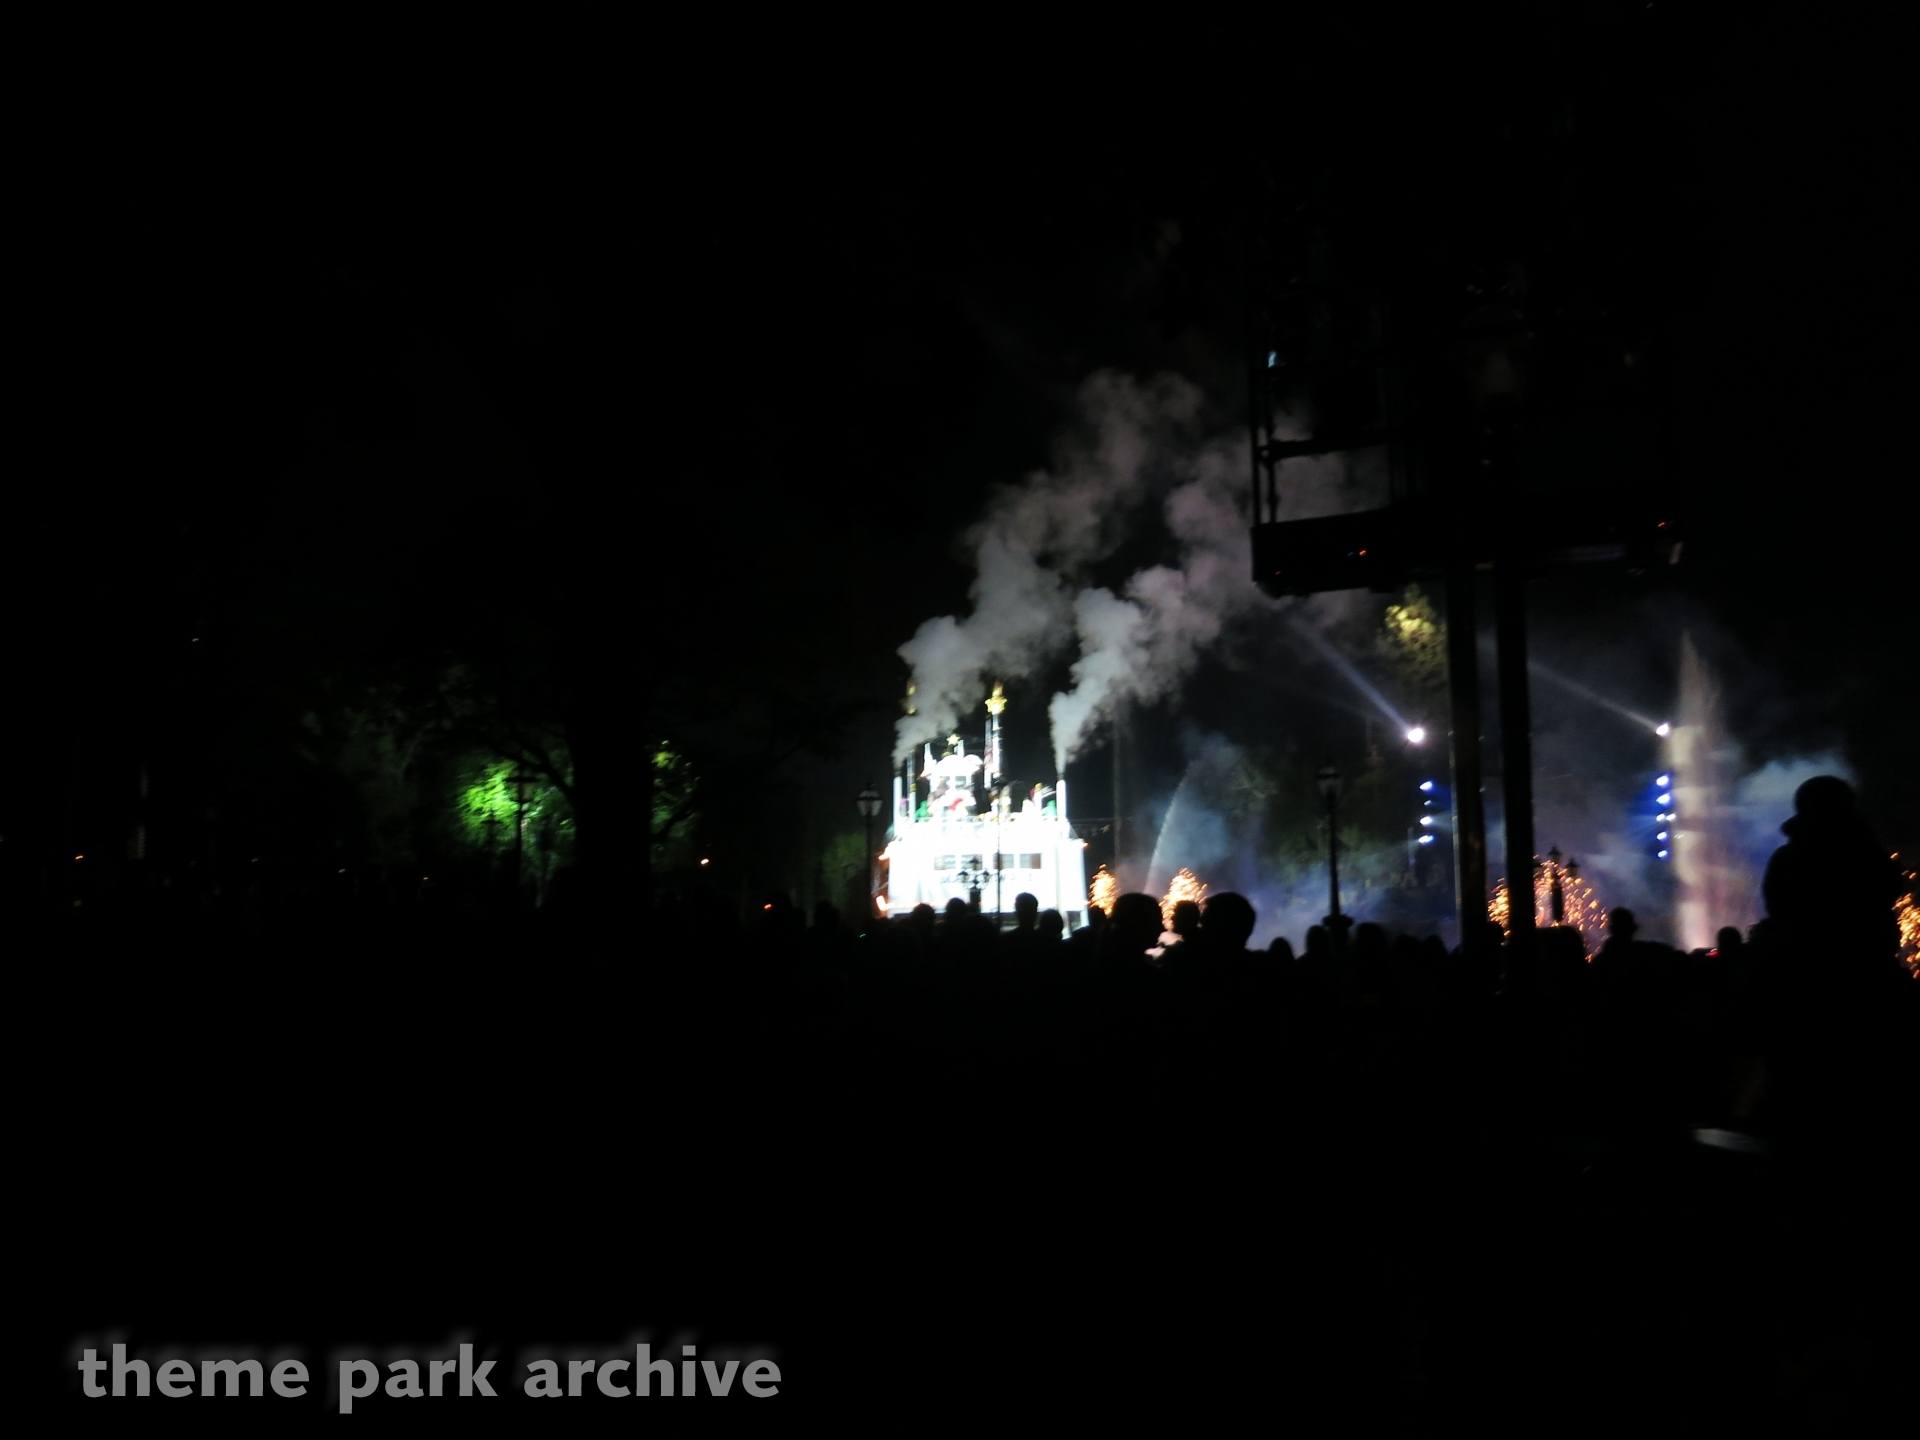 Fantasmic at Disneyland